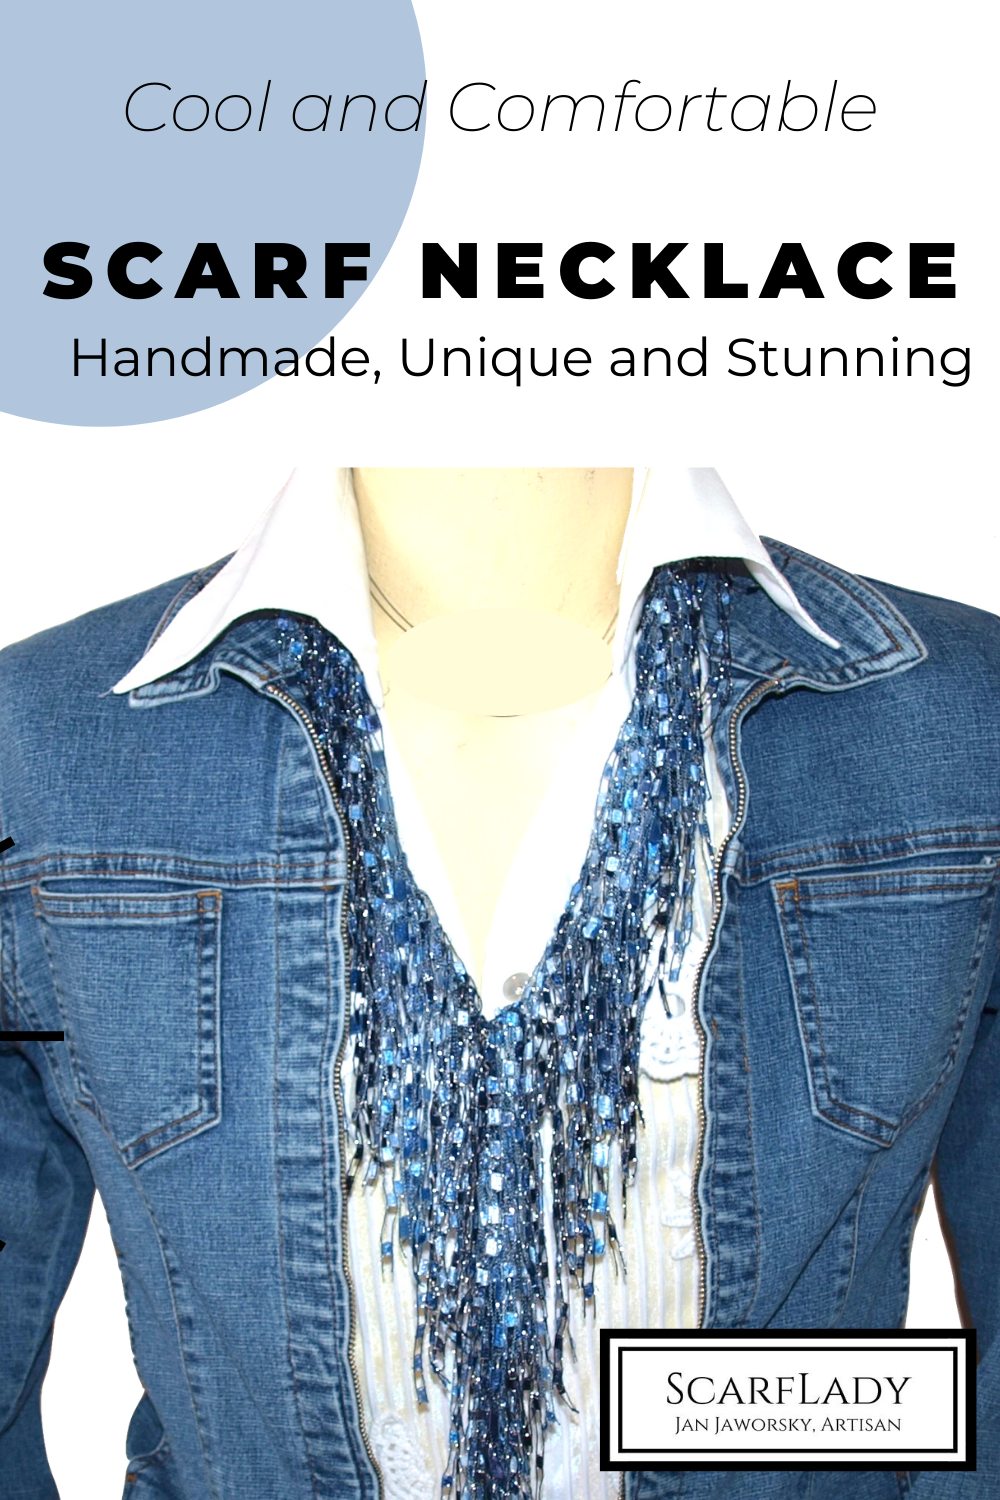 READY TO SEE HOW TO WEAR THE SCARF NECKLACE FROM SCARFLADY?